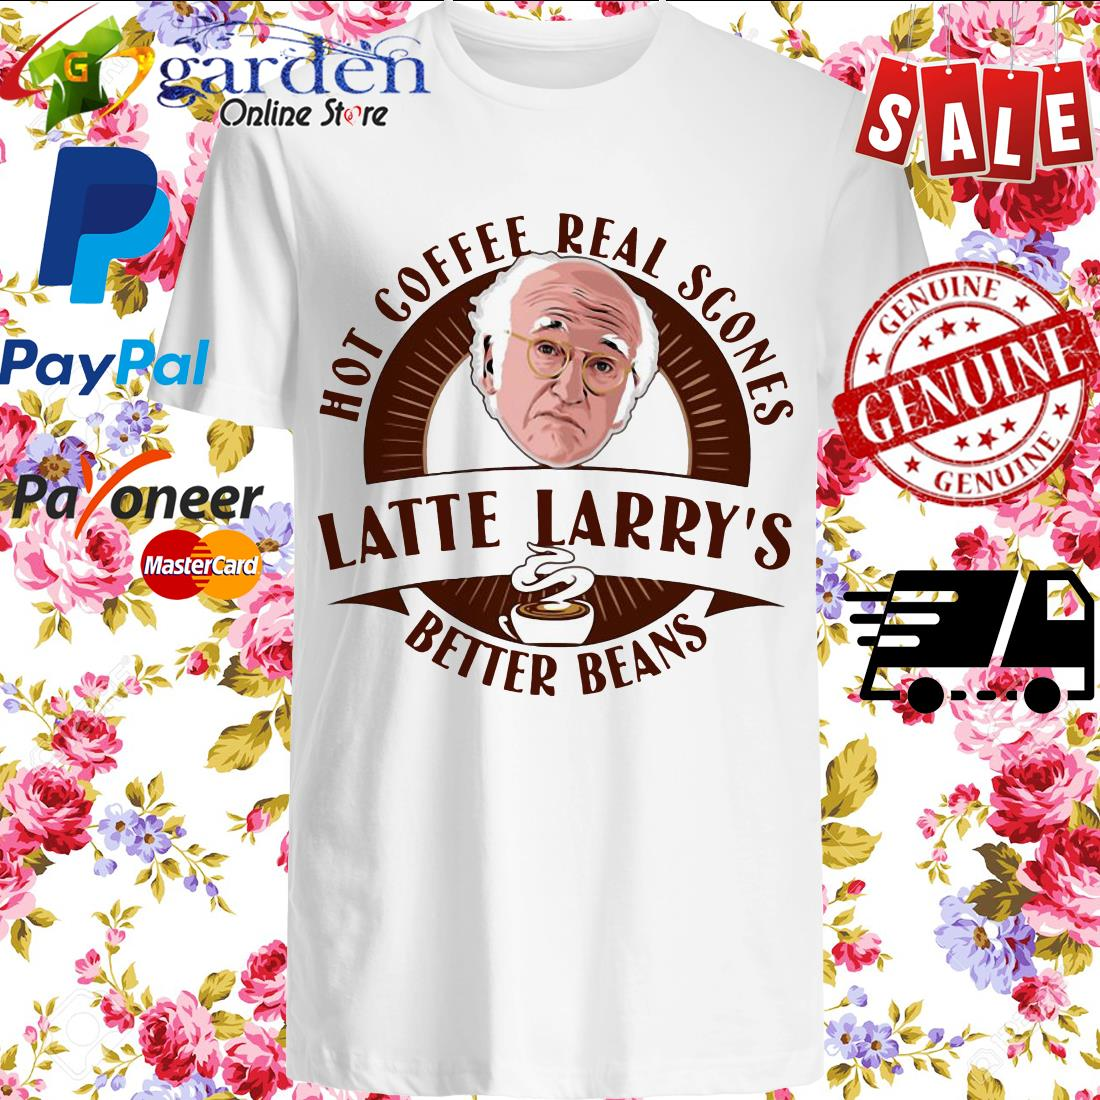 Hot Coffee Real Scones Latte Larry's Better Beans Shirt